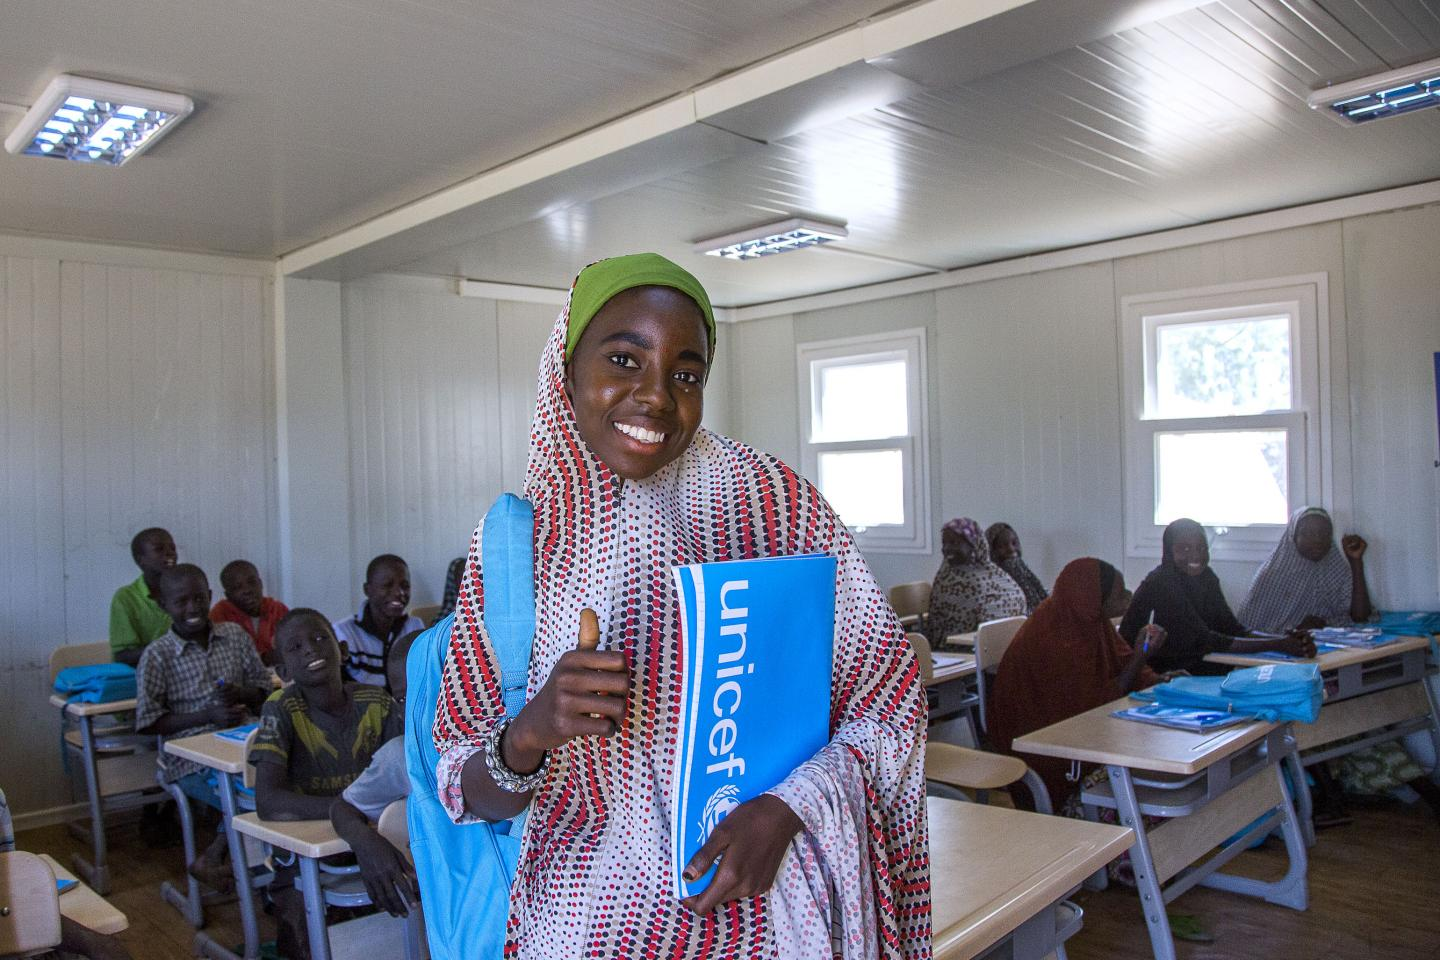 Students in classroom. Photo: UNICEF